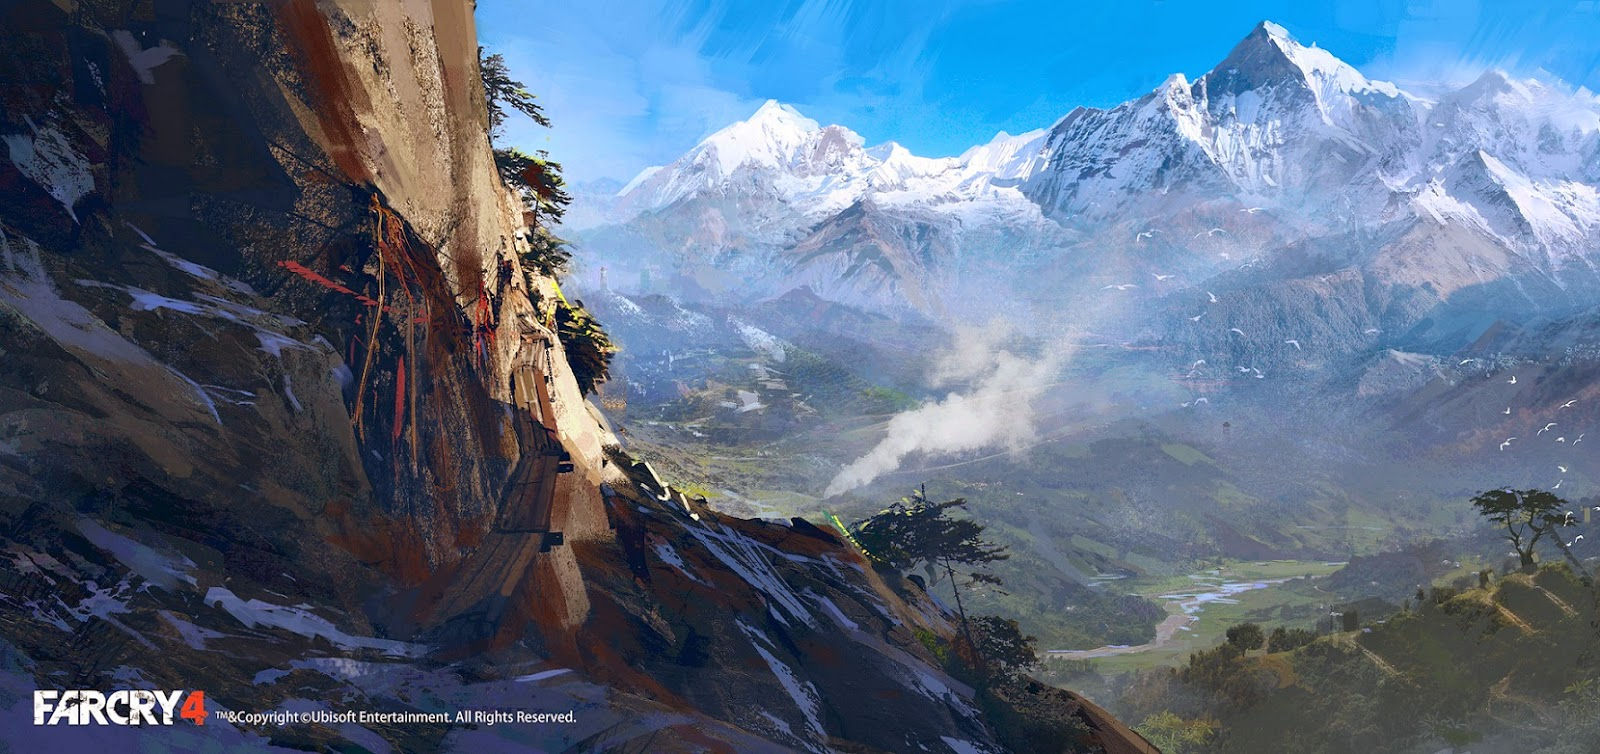 far cry 4 concept art is the reason why it 39 s a beautiful game vg247. Black Bedroom Furniture Sets. Home Design Ideas